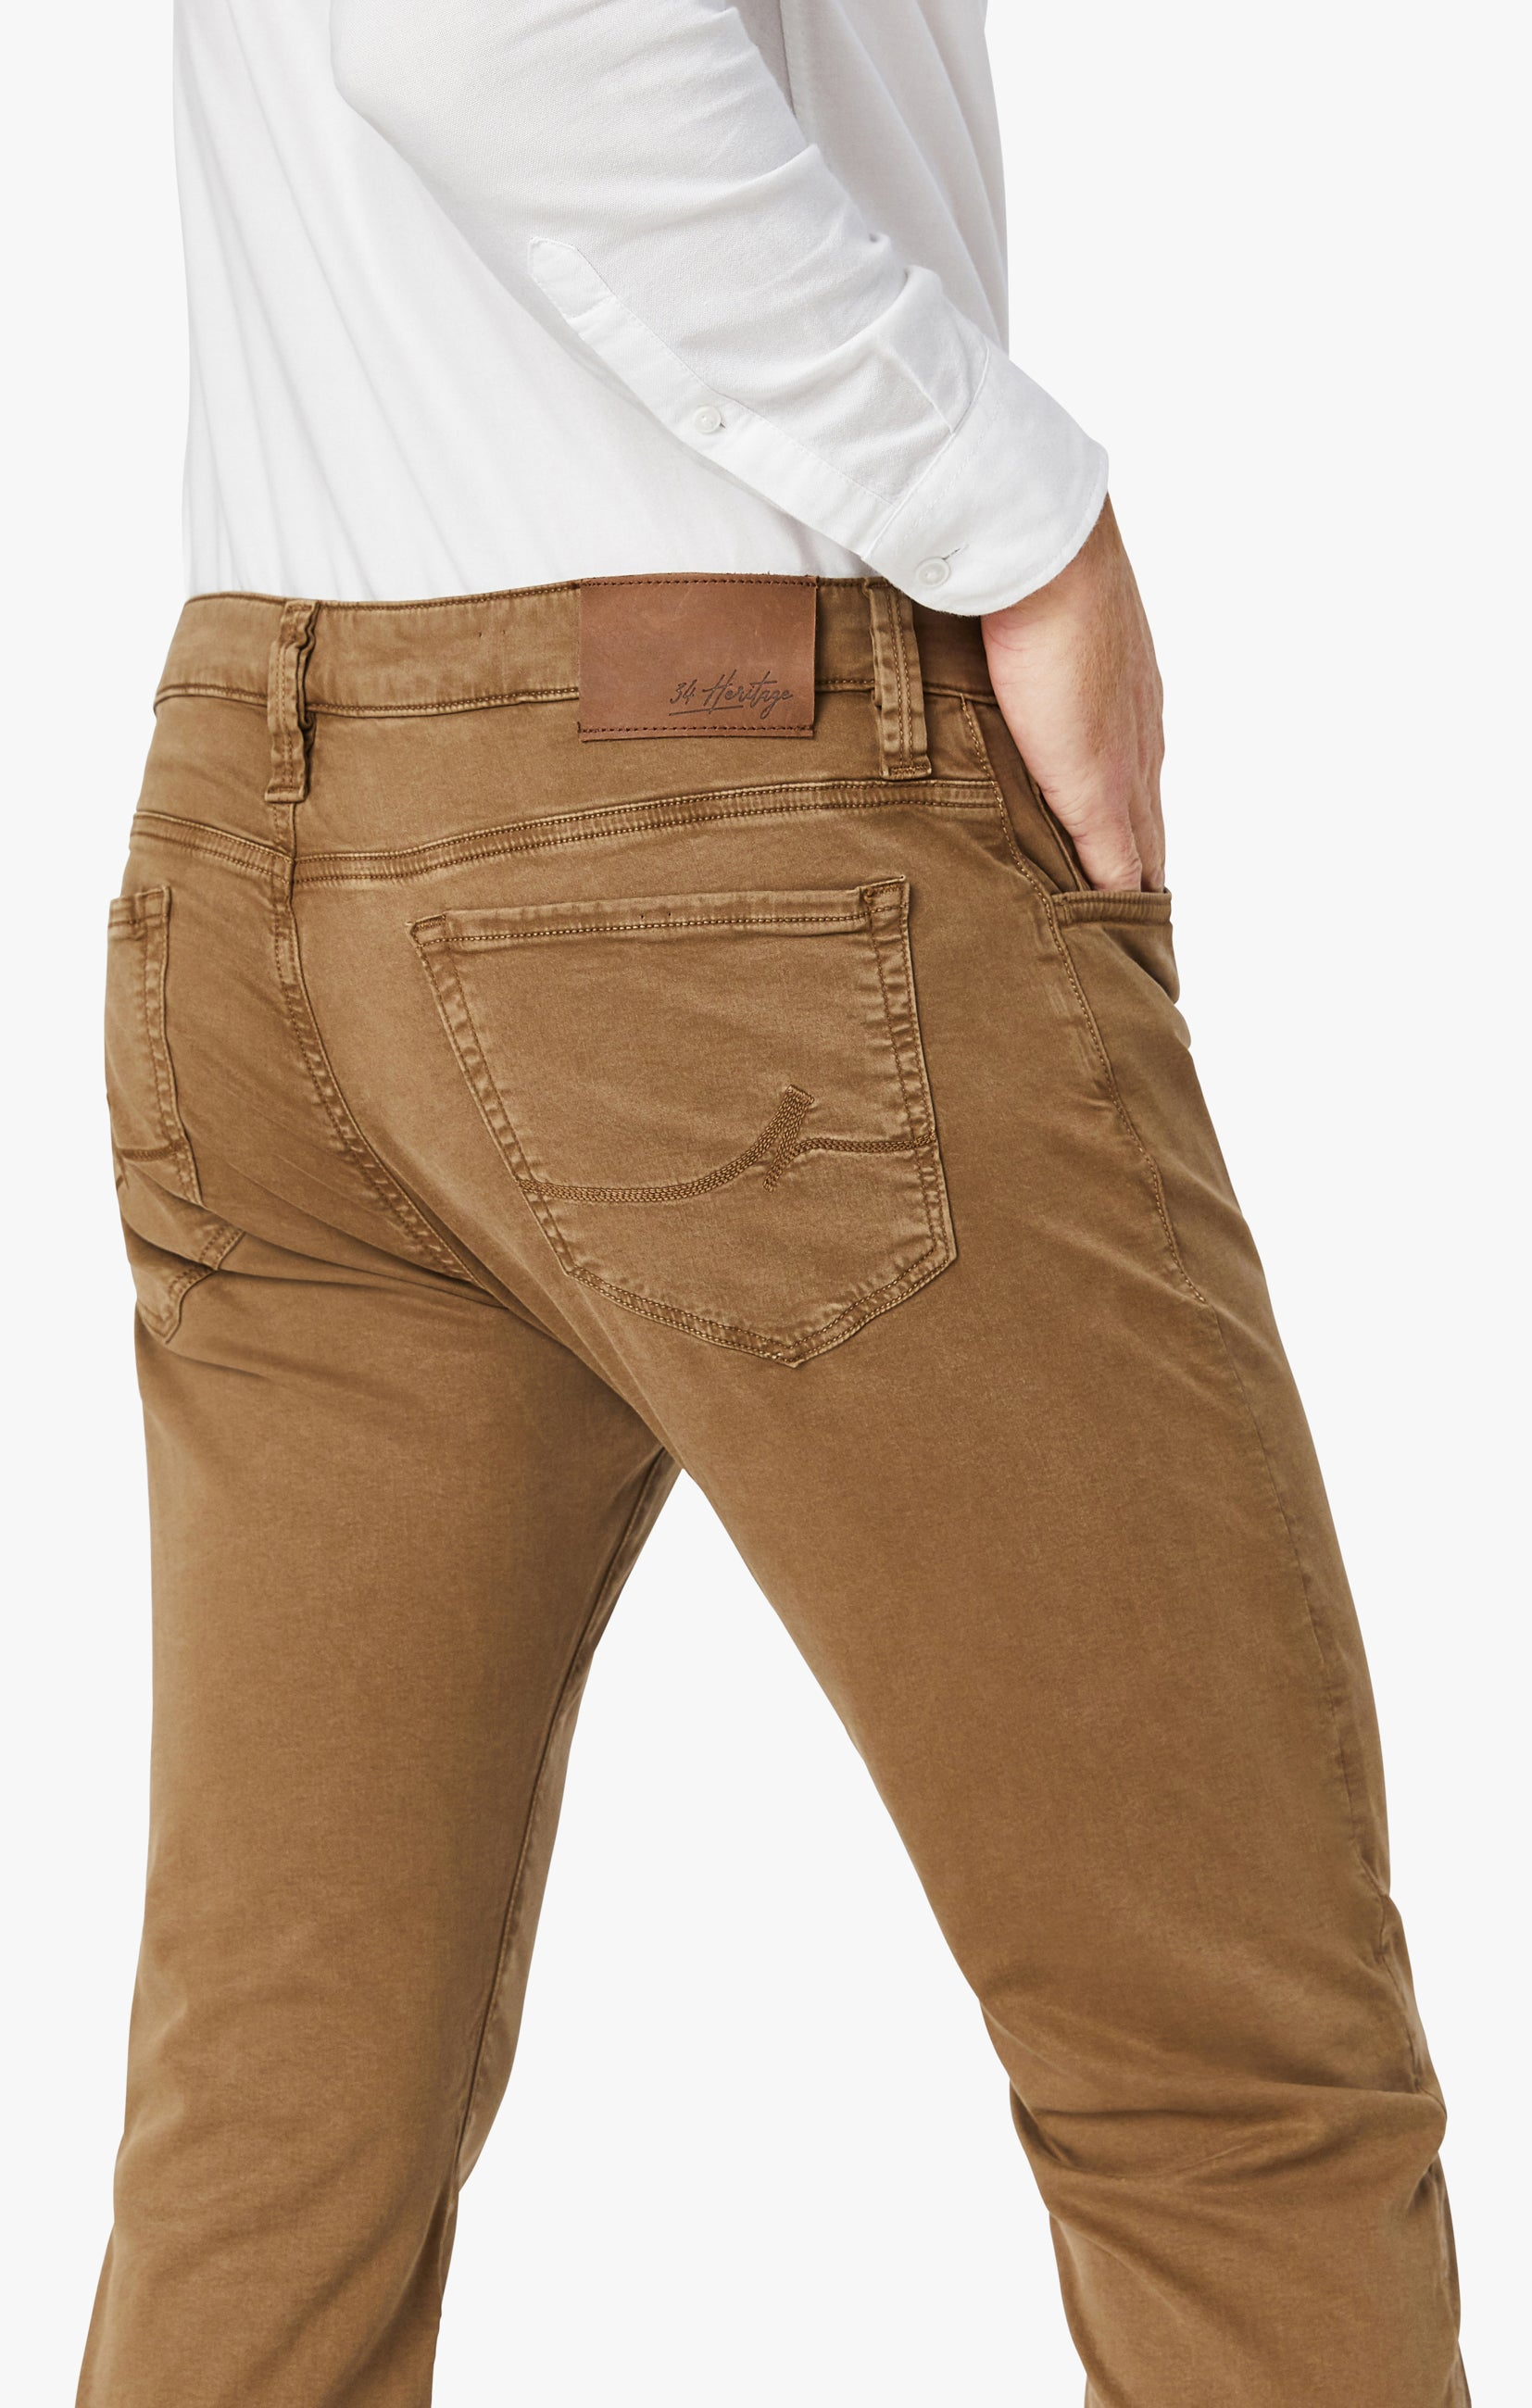 Cool Tapered Leg Pants In Tobacco Twill Image 3